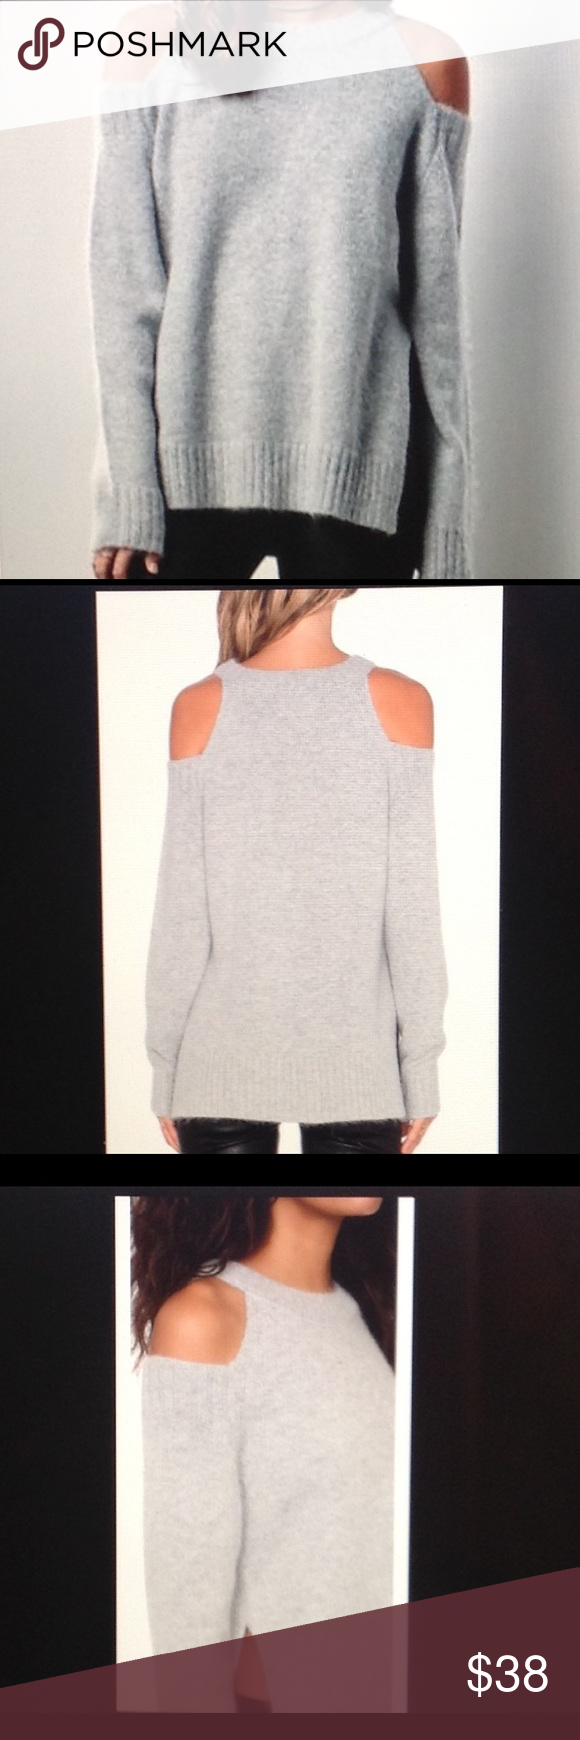 58fc016c1f J.O.A. Los Angeles Cold Shoulder Sweater Beautiful Gray open shoulder  sweater with side slits. So